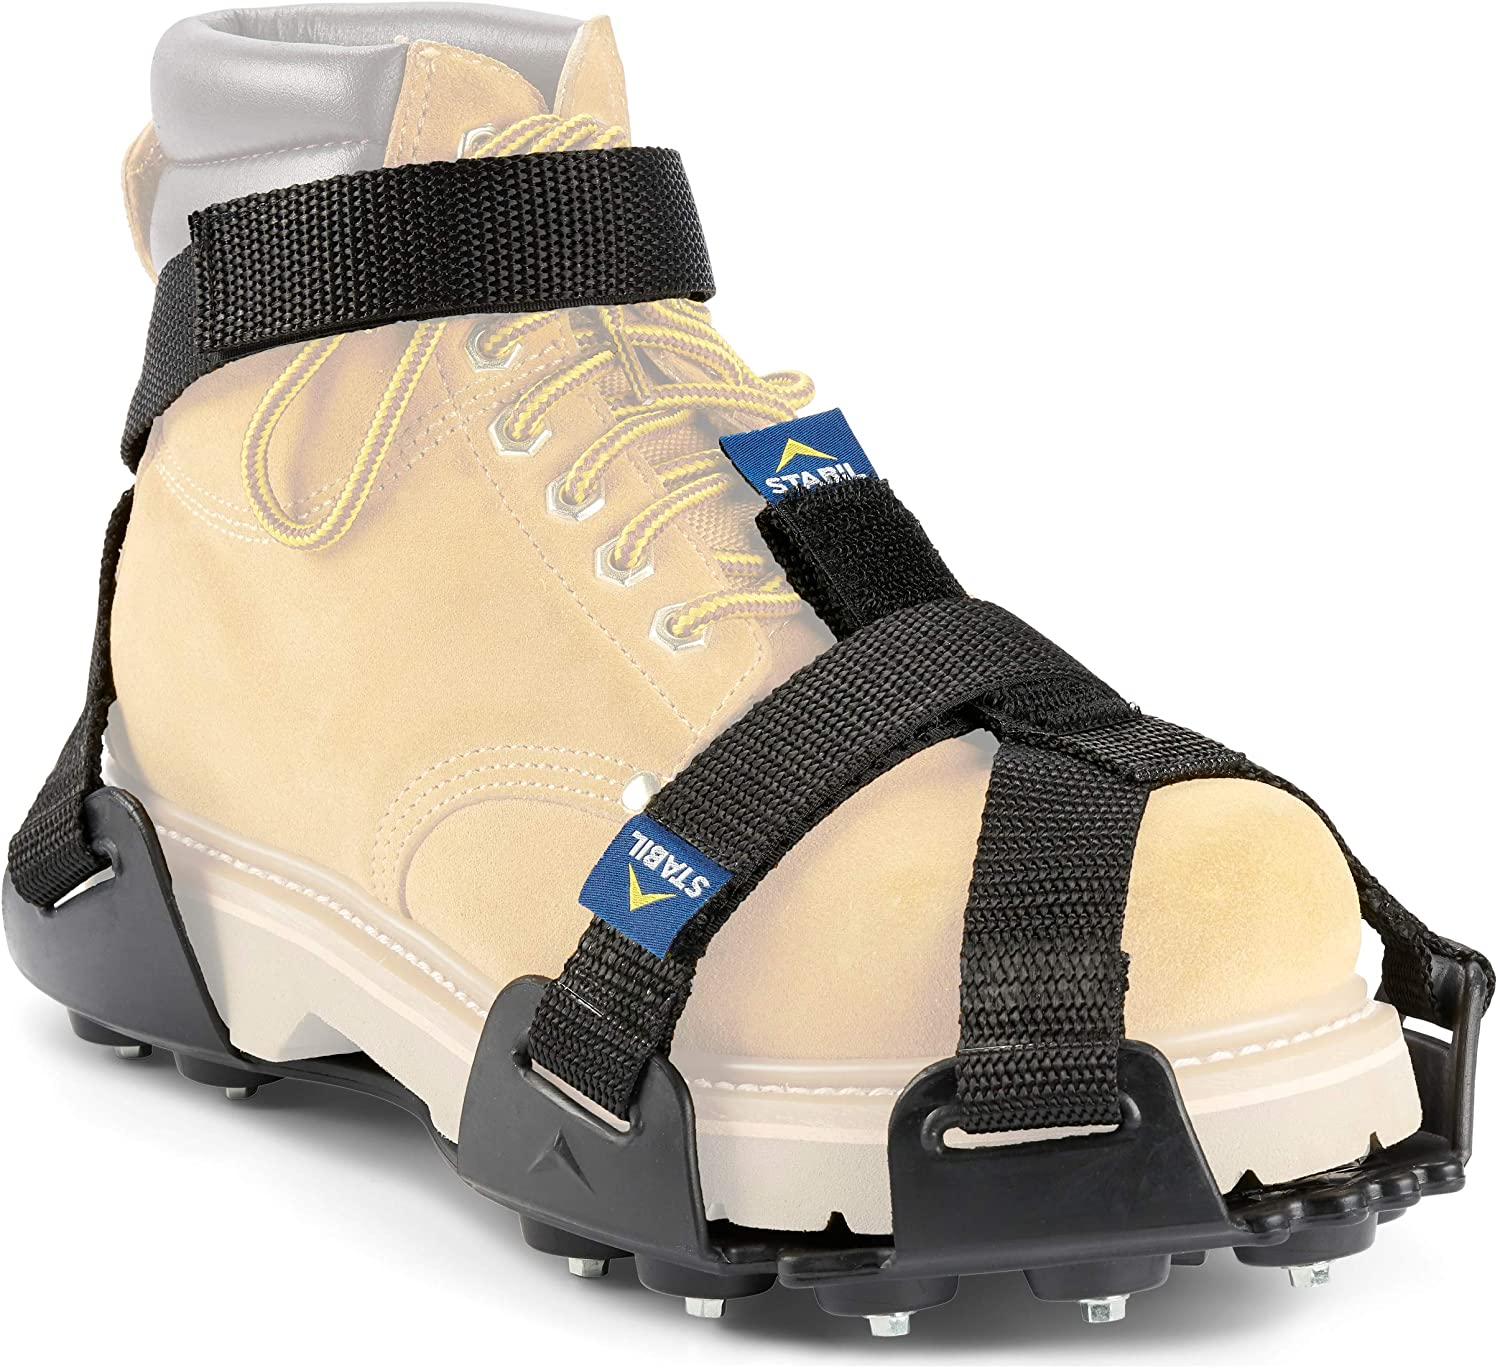 STABILicers Maxx 2 Heavy-Duty Traction Cleats for Job Safety in Ice and Snow